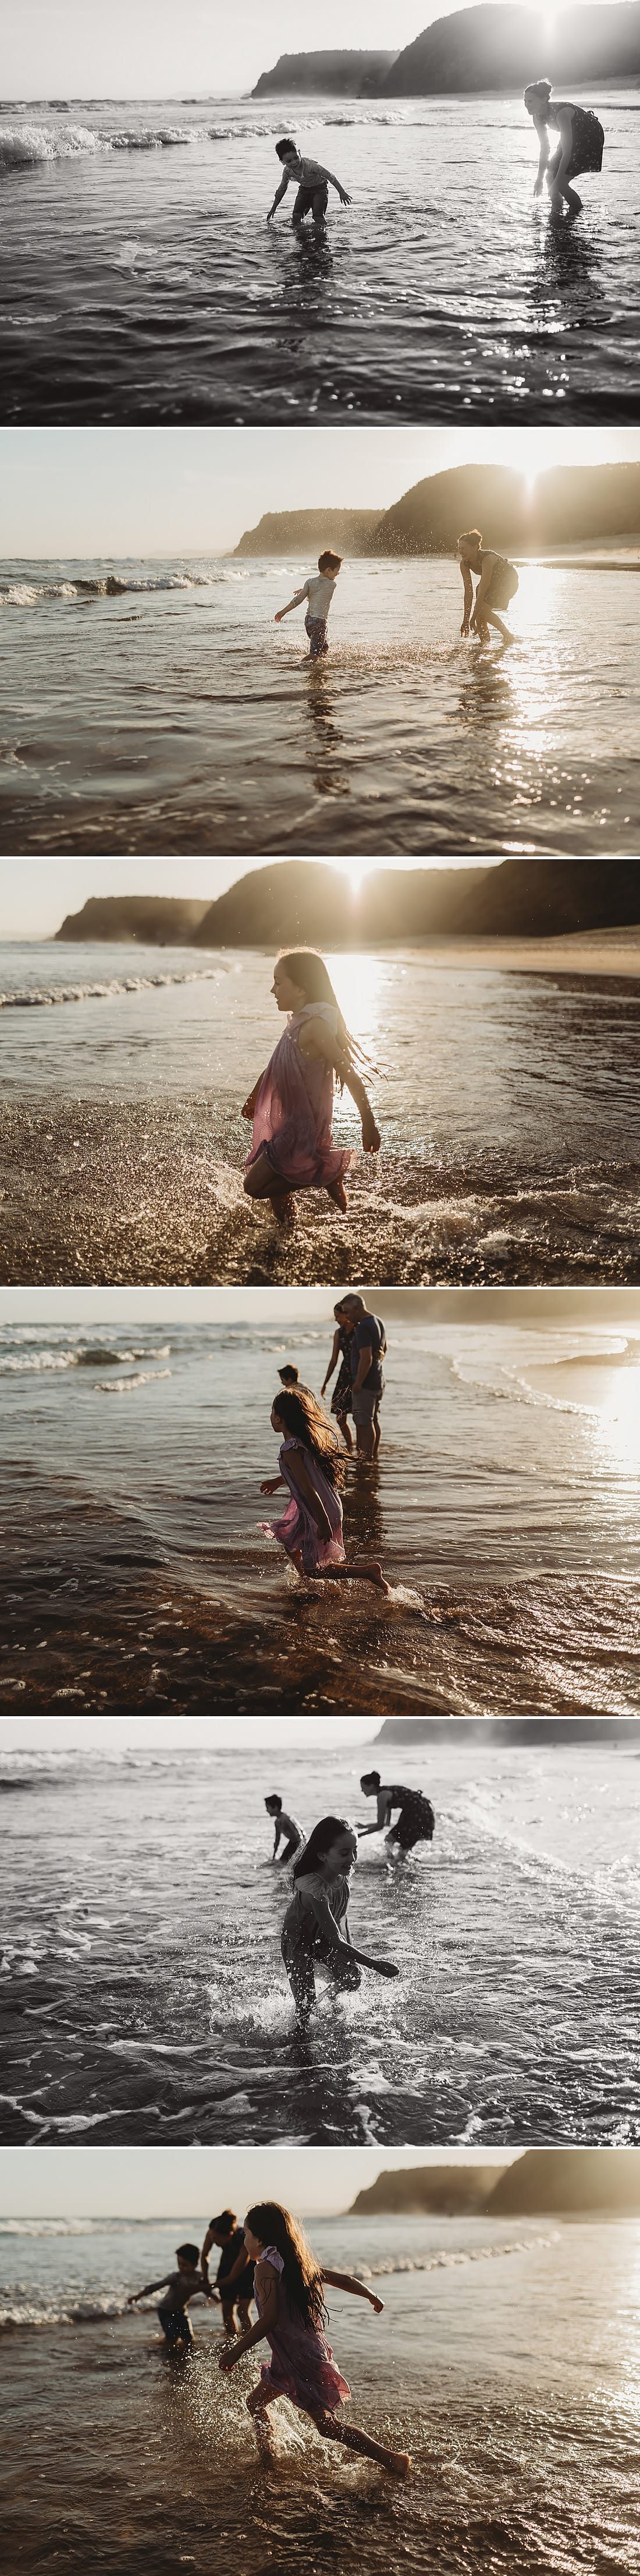 Lifestyle-Family-Photography-Beach-Session-Natural-Moments